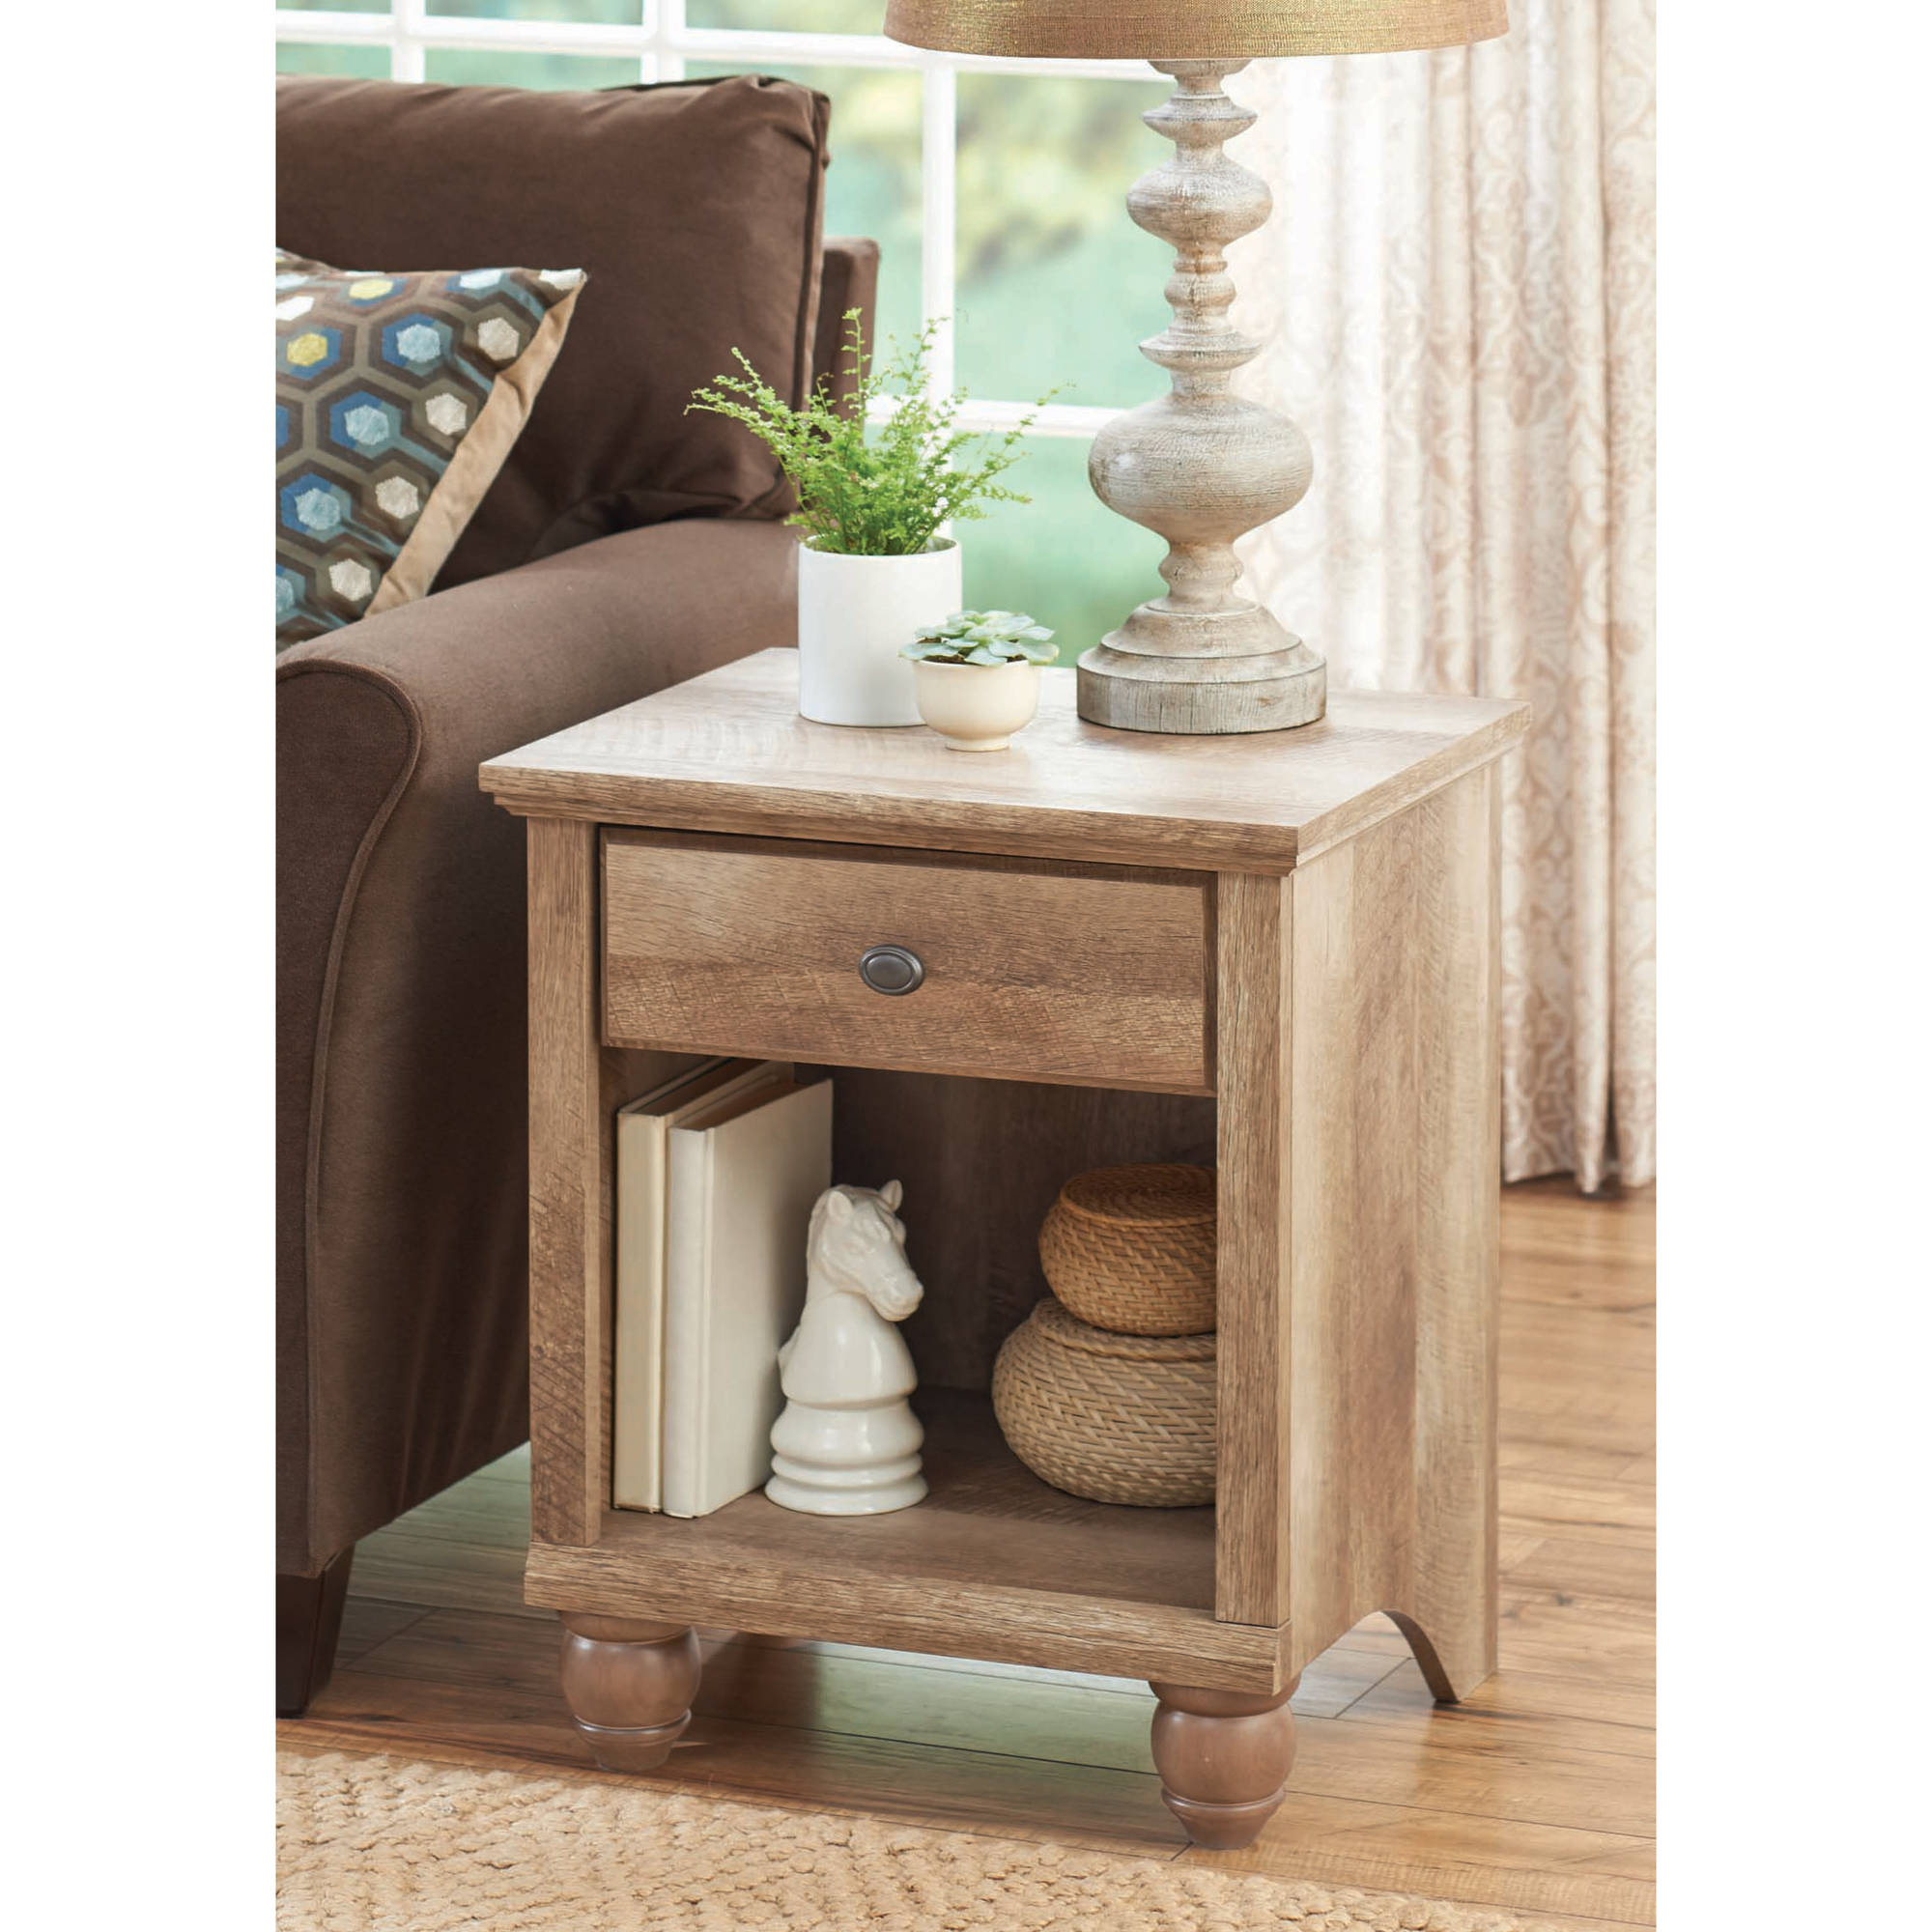 Picture 2 of 6. Better Homes and Gardens Crossmill Collection End Table Weathered